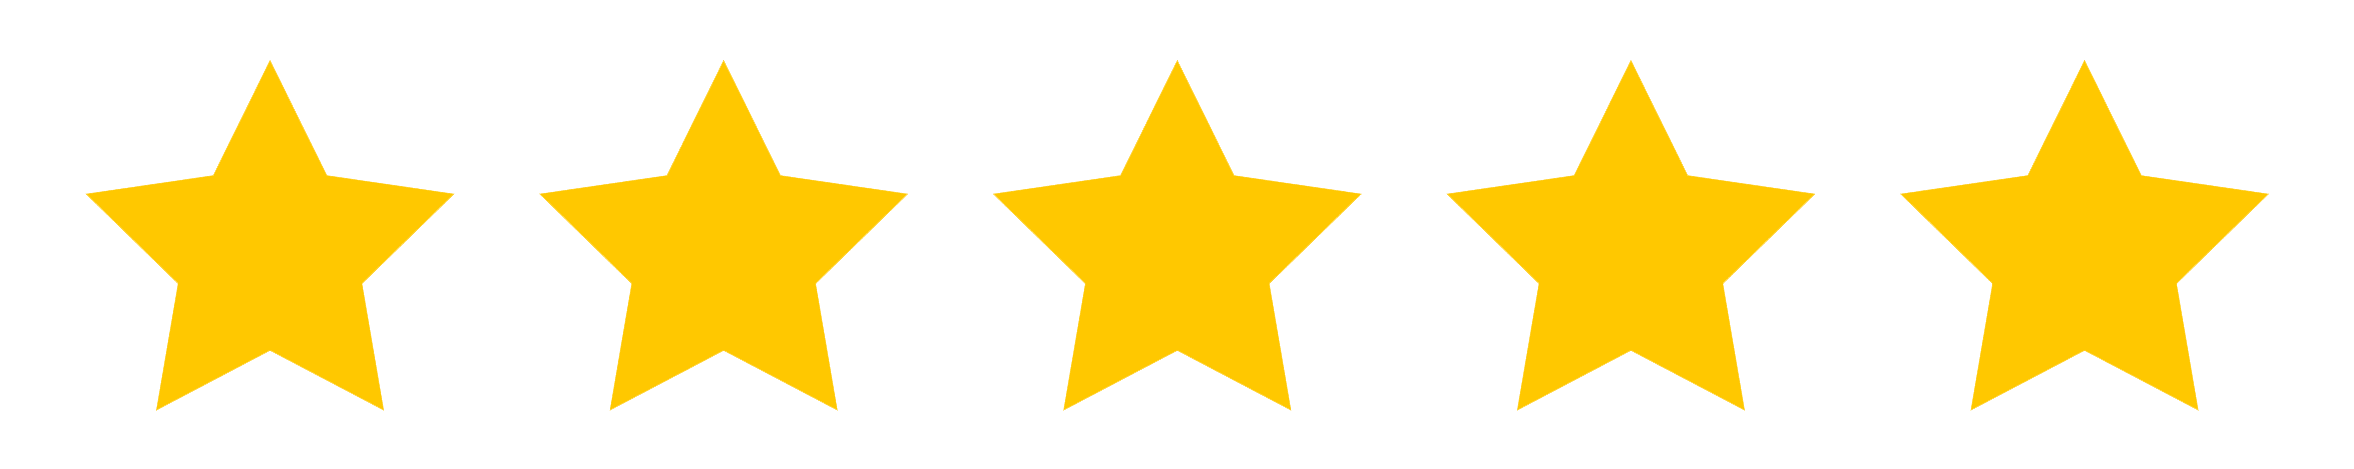 Reviews star rating from Diane C. for A-1 Self Storage in North Hollywood, California